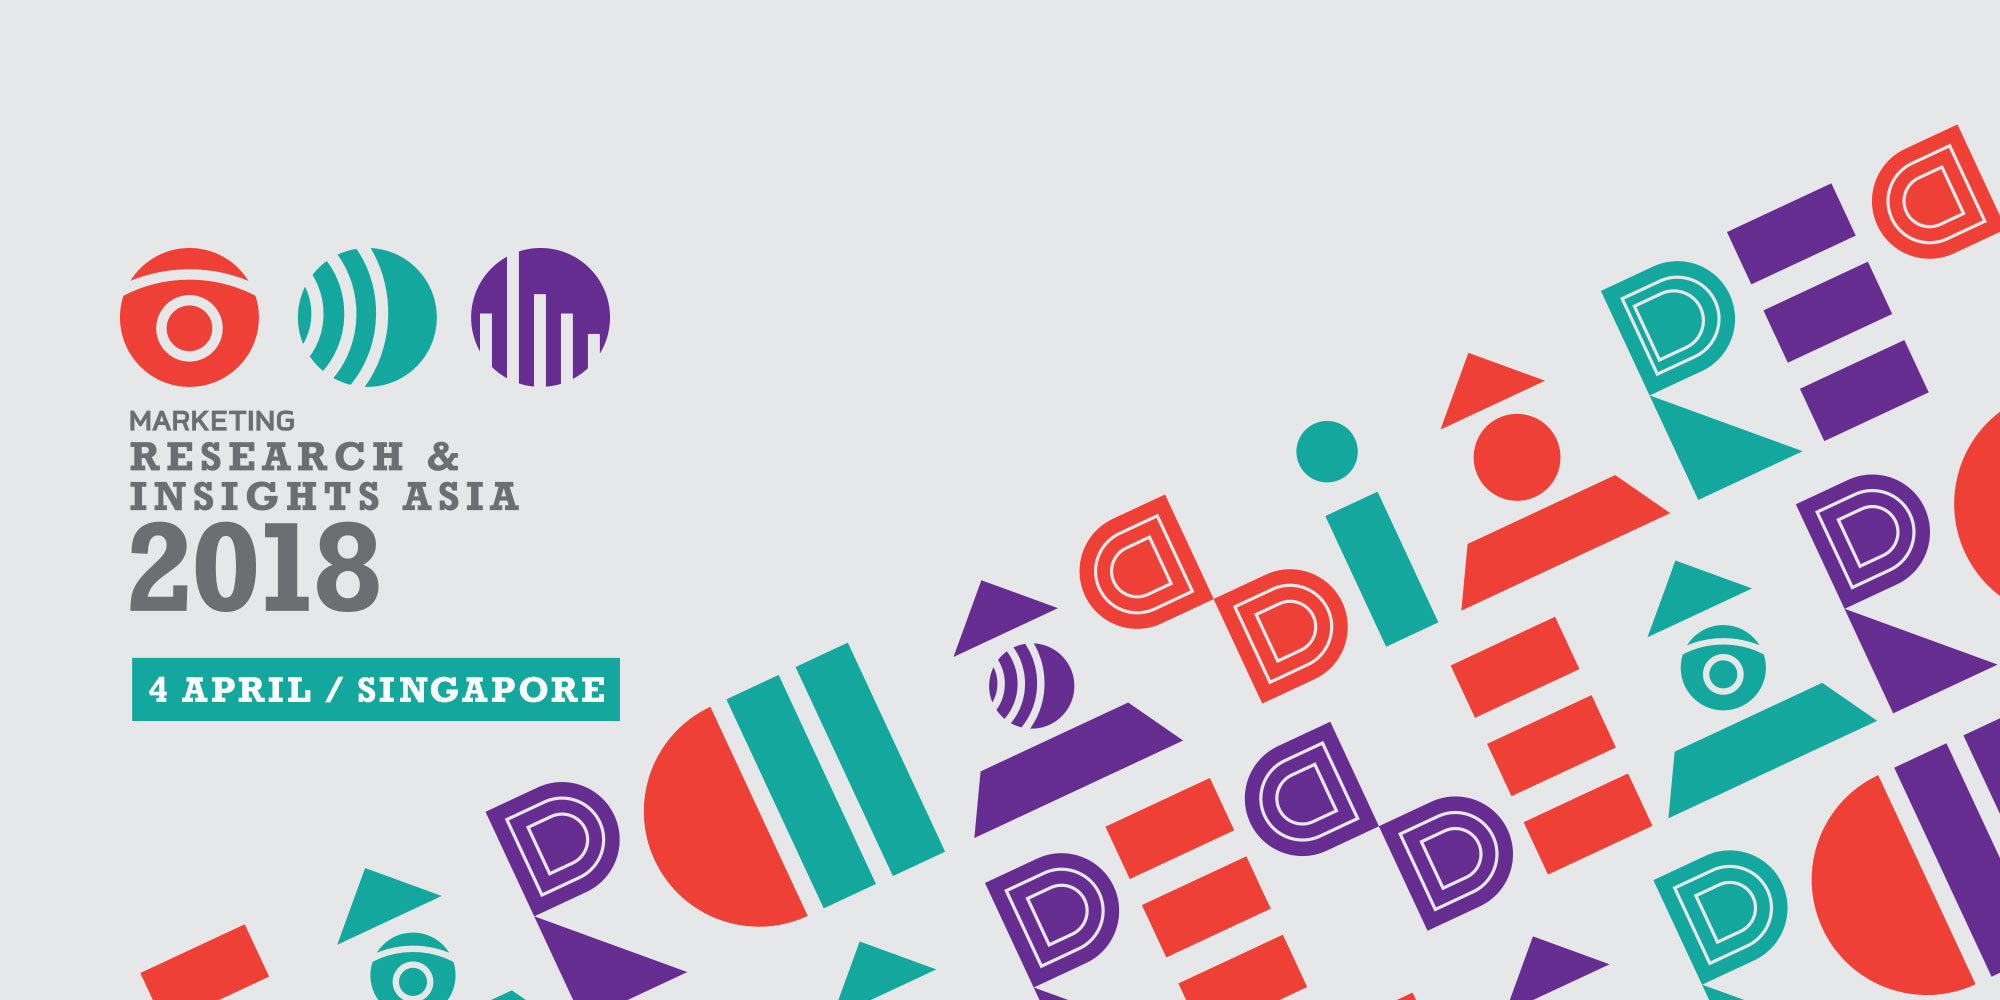 Research & Insights Asia 2018